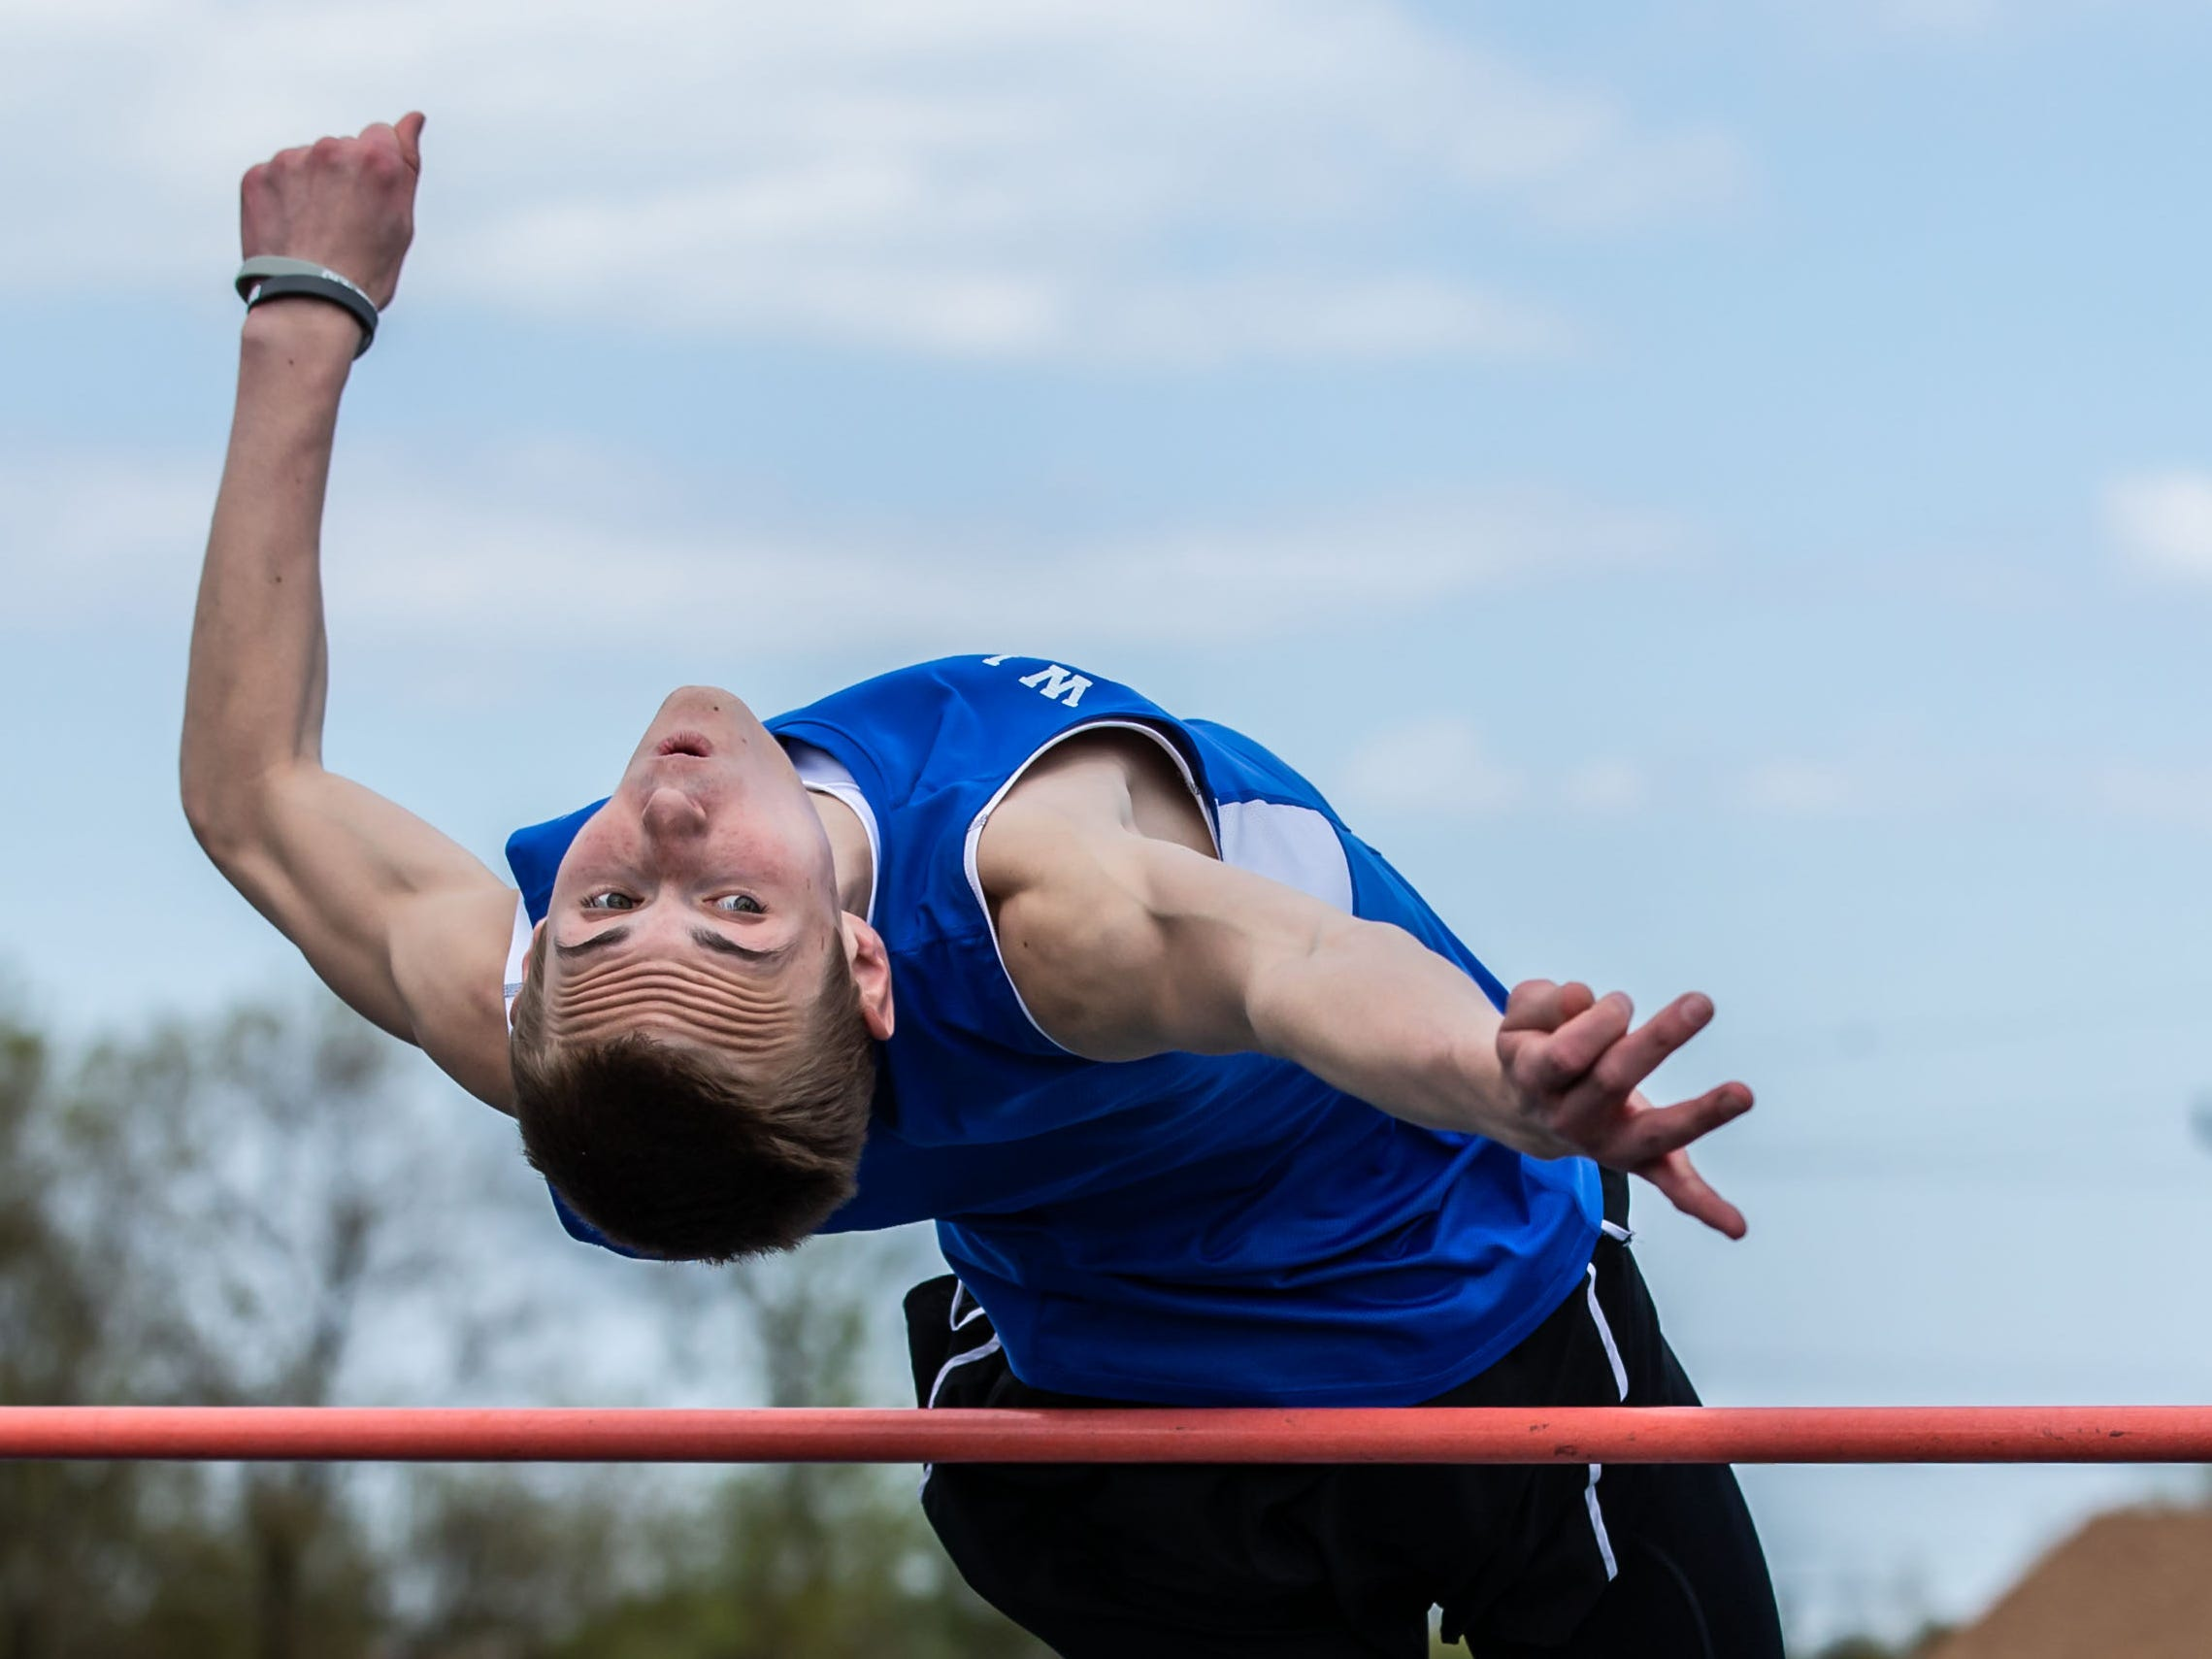 Wisconsin Lutheran's Nathan Miller competes in the high jump at the Woodland Conference Track and Field Championships in West Allis on Tuesday, May 14, 2019.